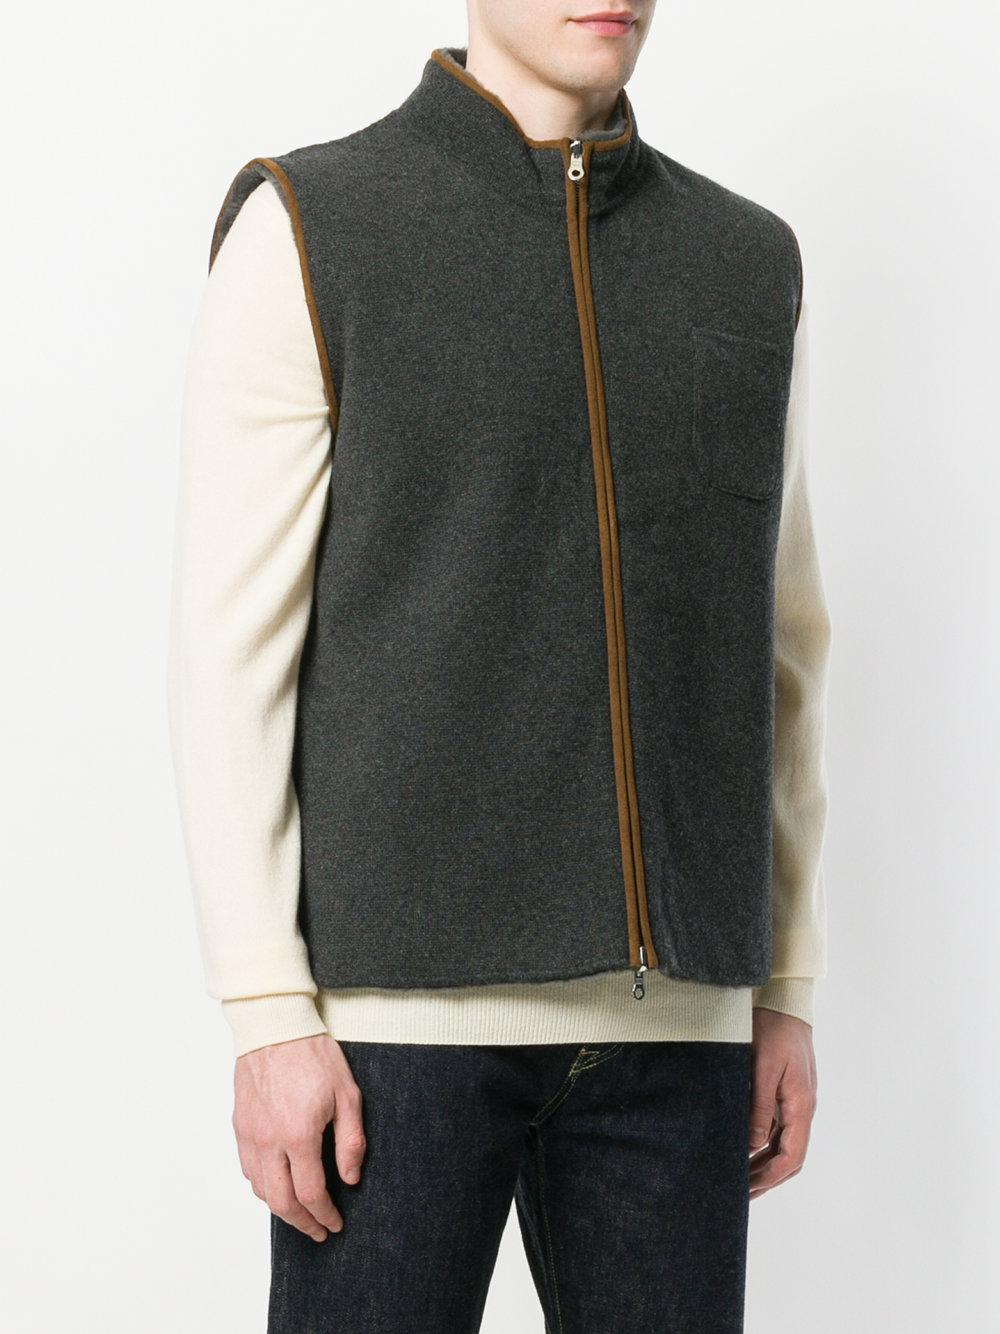 zipped gilet jacket - Grey N.Peal Cheap For Cheap Shop Largest Supplier Online Cheap Outlet kEwUiYRino